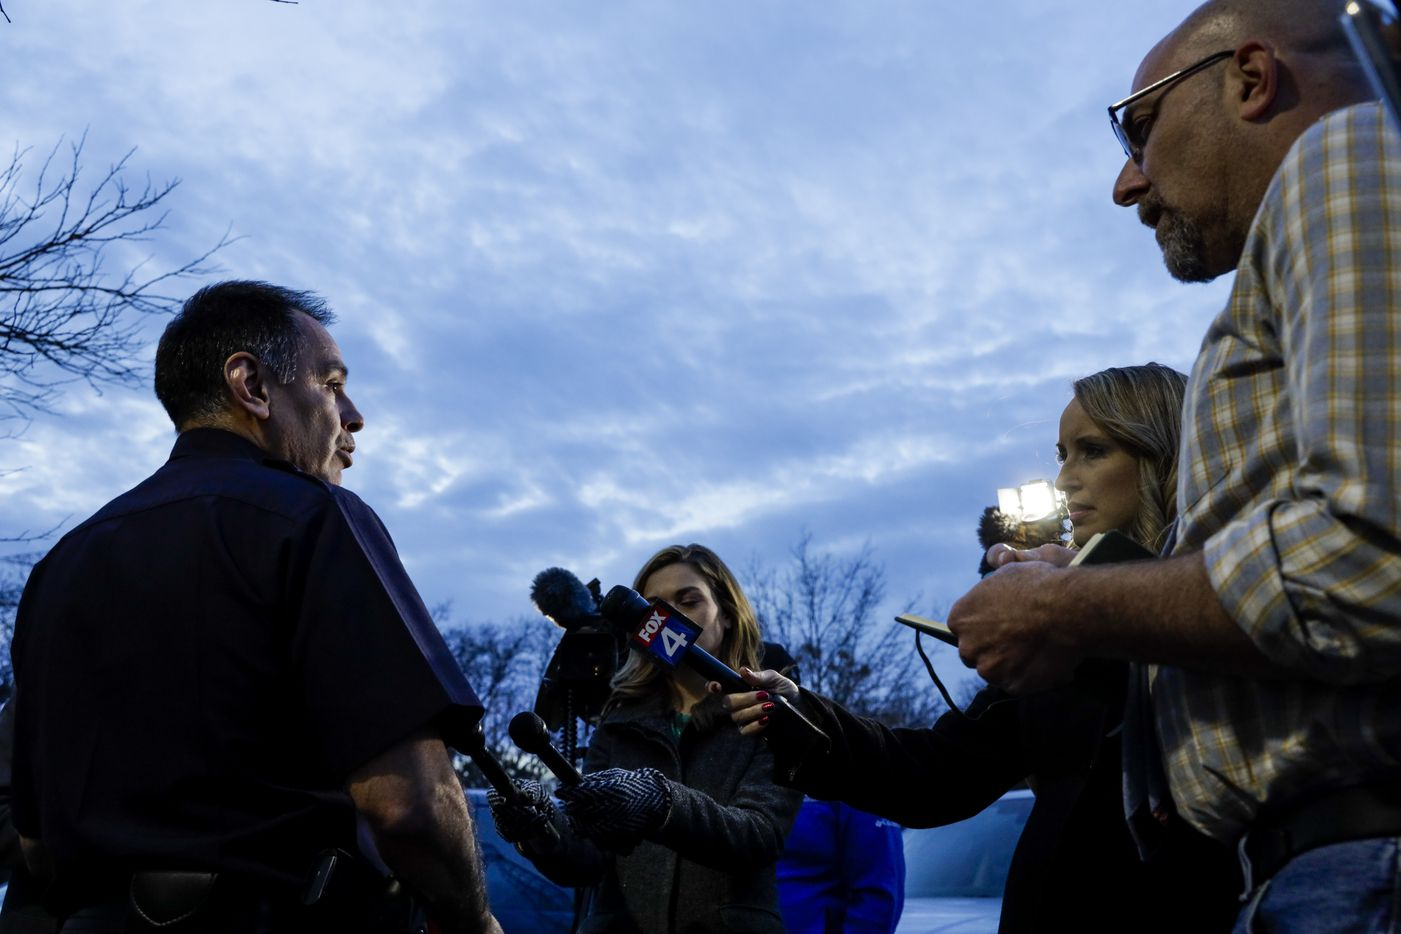 Dallas Police Dept. public information officer Thomas Castro gives remarks about an alleged incident involving a vehicle driven by Dallas City Councilperson Kevin Felder, at Park In the Woods Recreation in Dallas on Wednesday, Feb. 13, 2019.